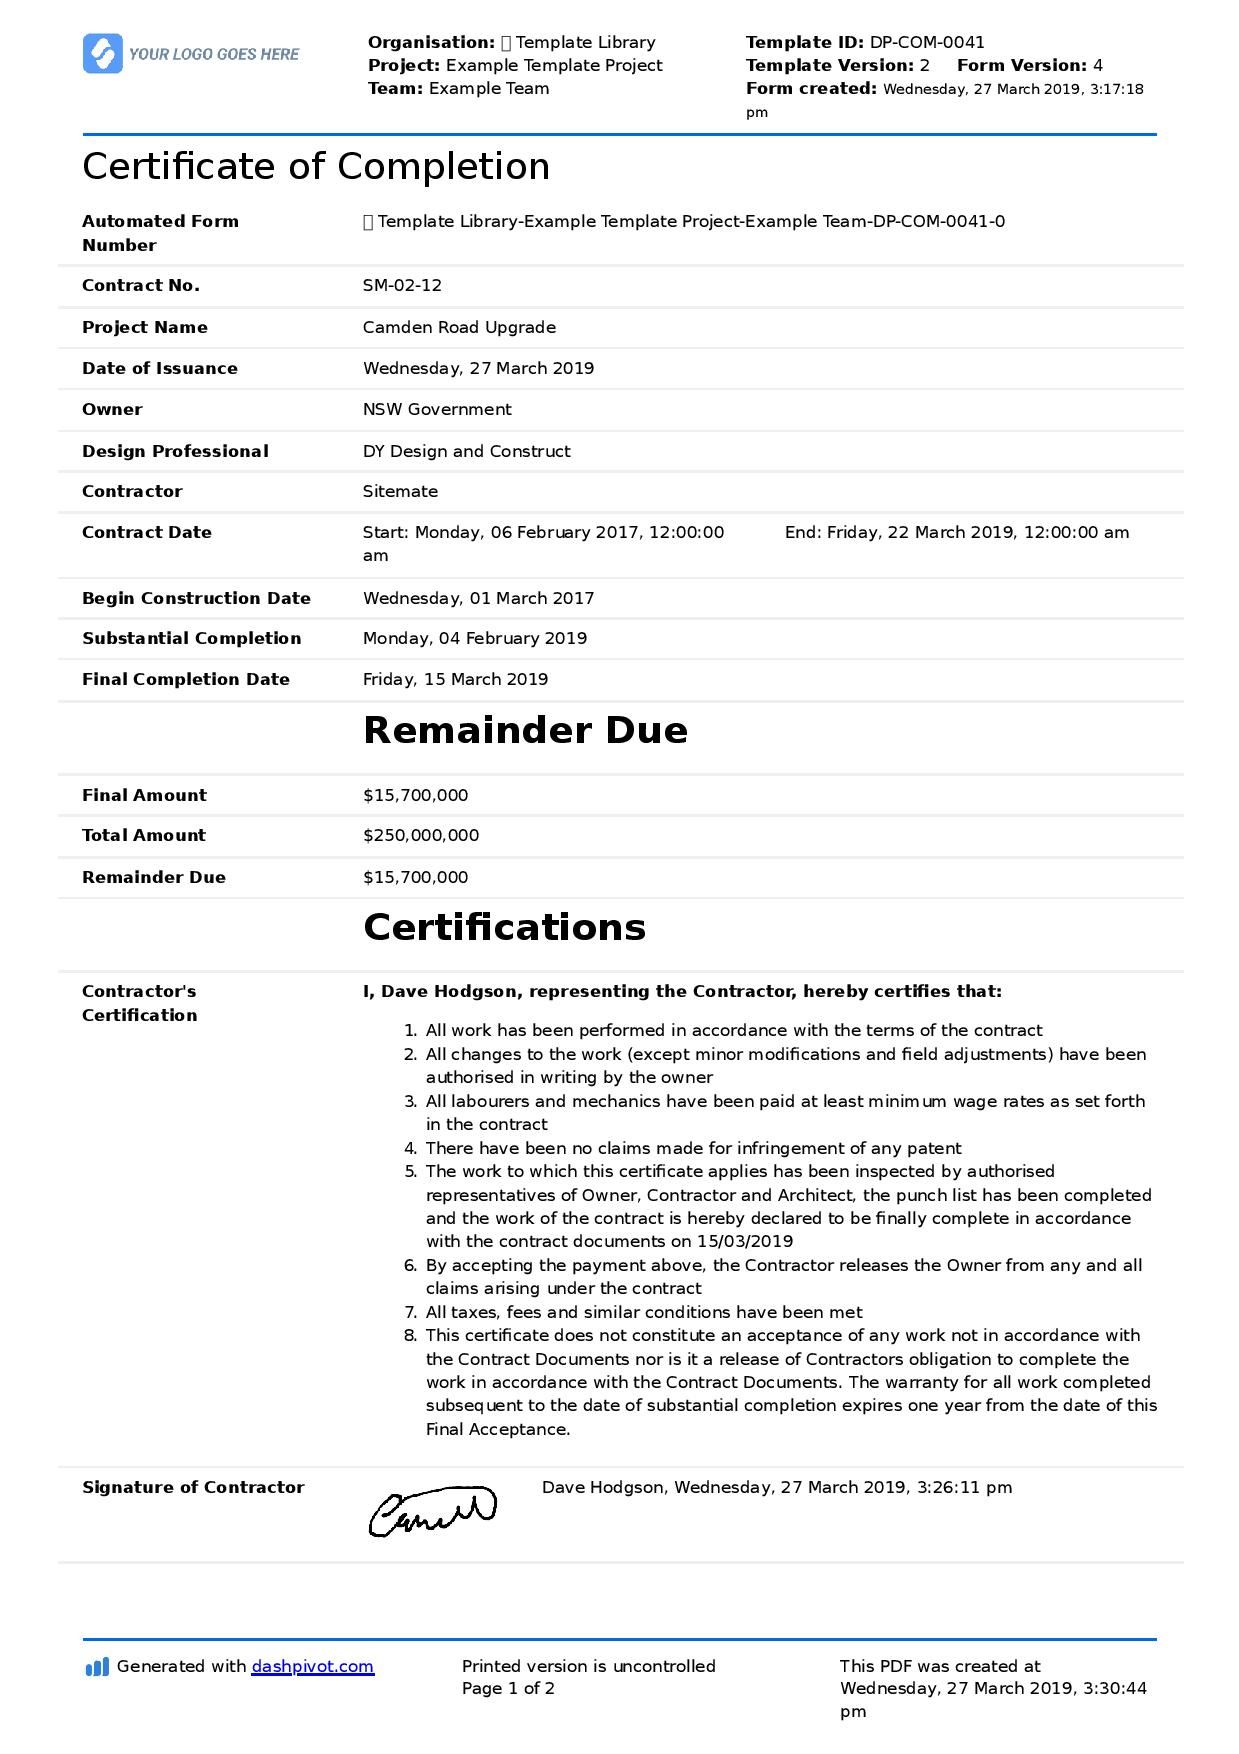 Certificate Of Completion For Construction (Free Template